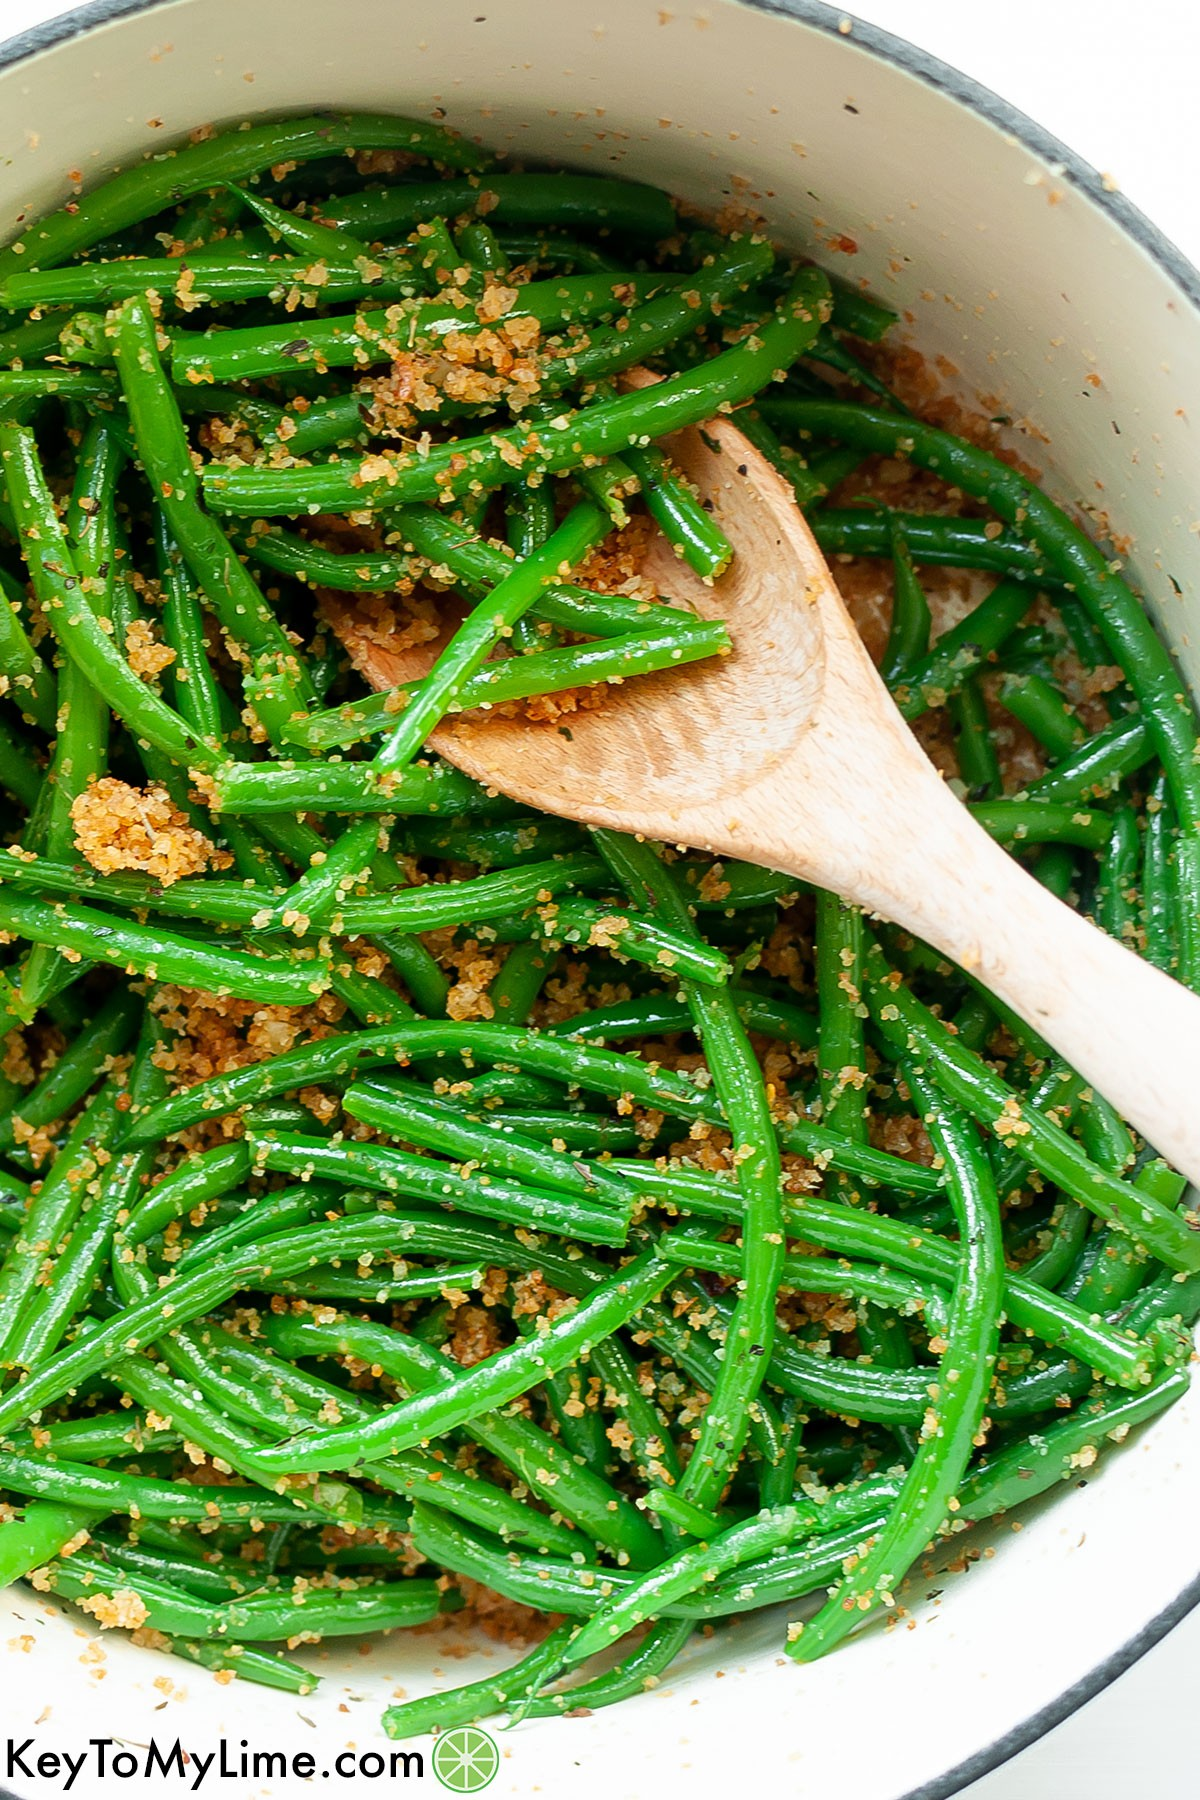 A Dutch oven filled with Italian green beans and breadcrumbs with a wooden spoon.